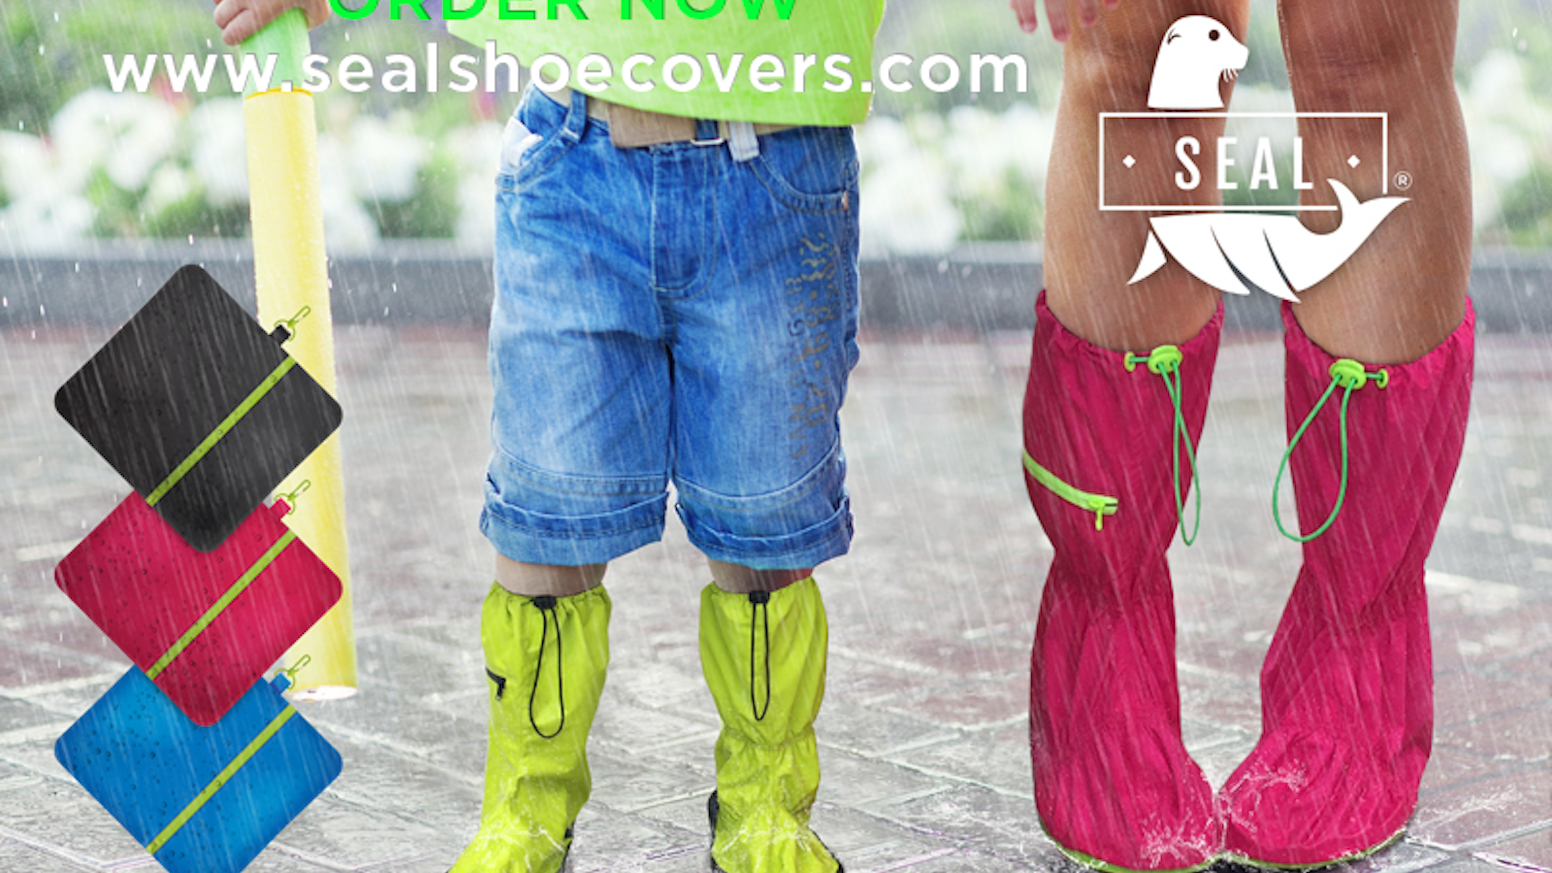 5c32c59307c3 SealShoeCovers.com - The Ultimate Shoe Cover by Seal Outdoors